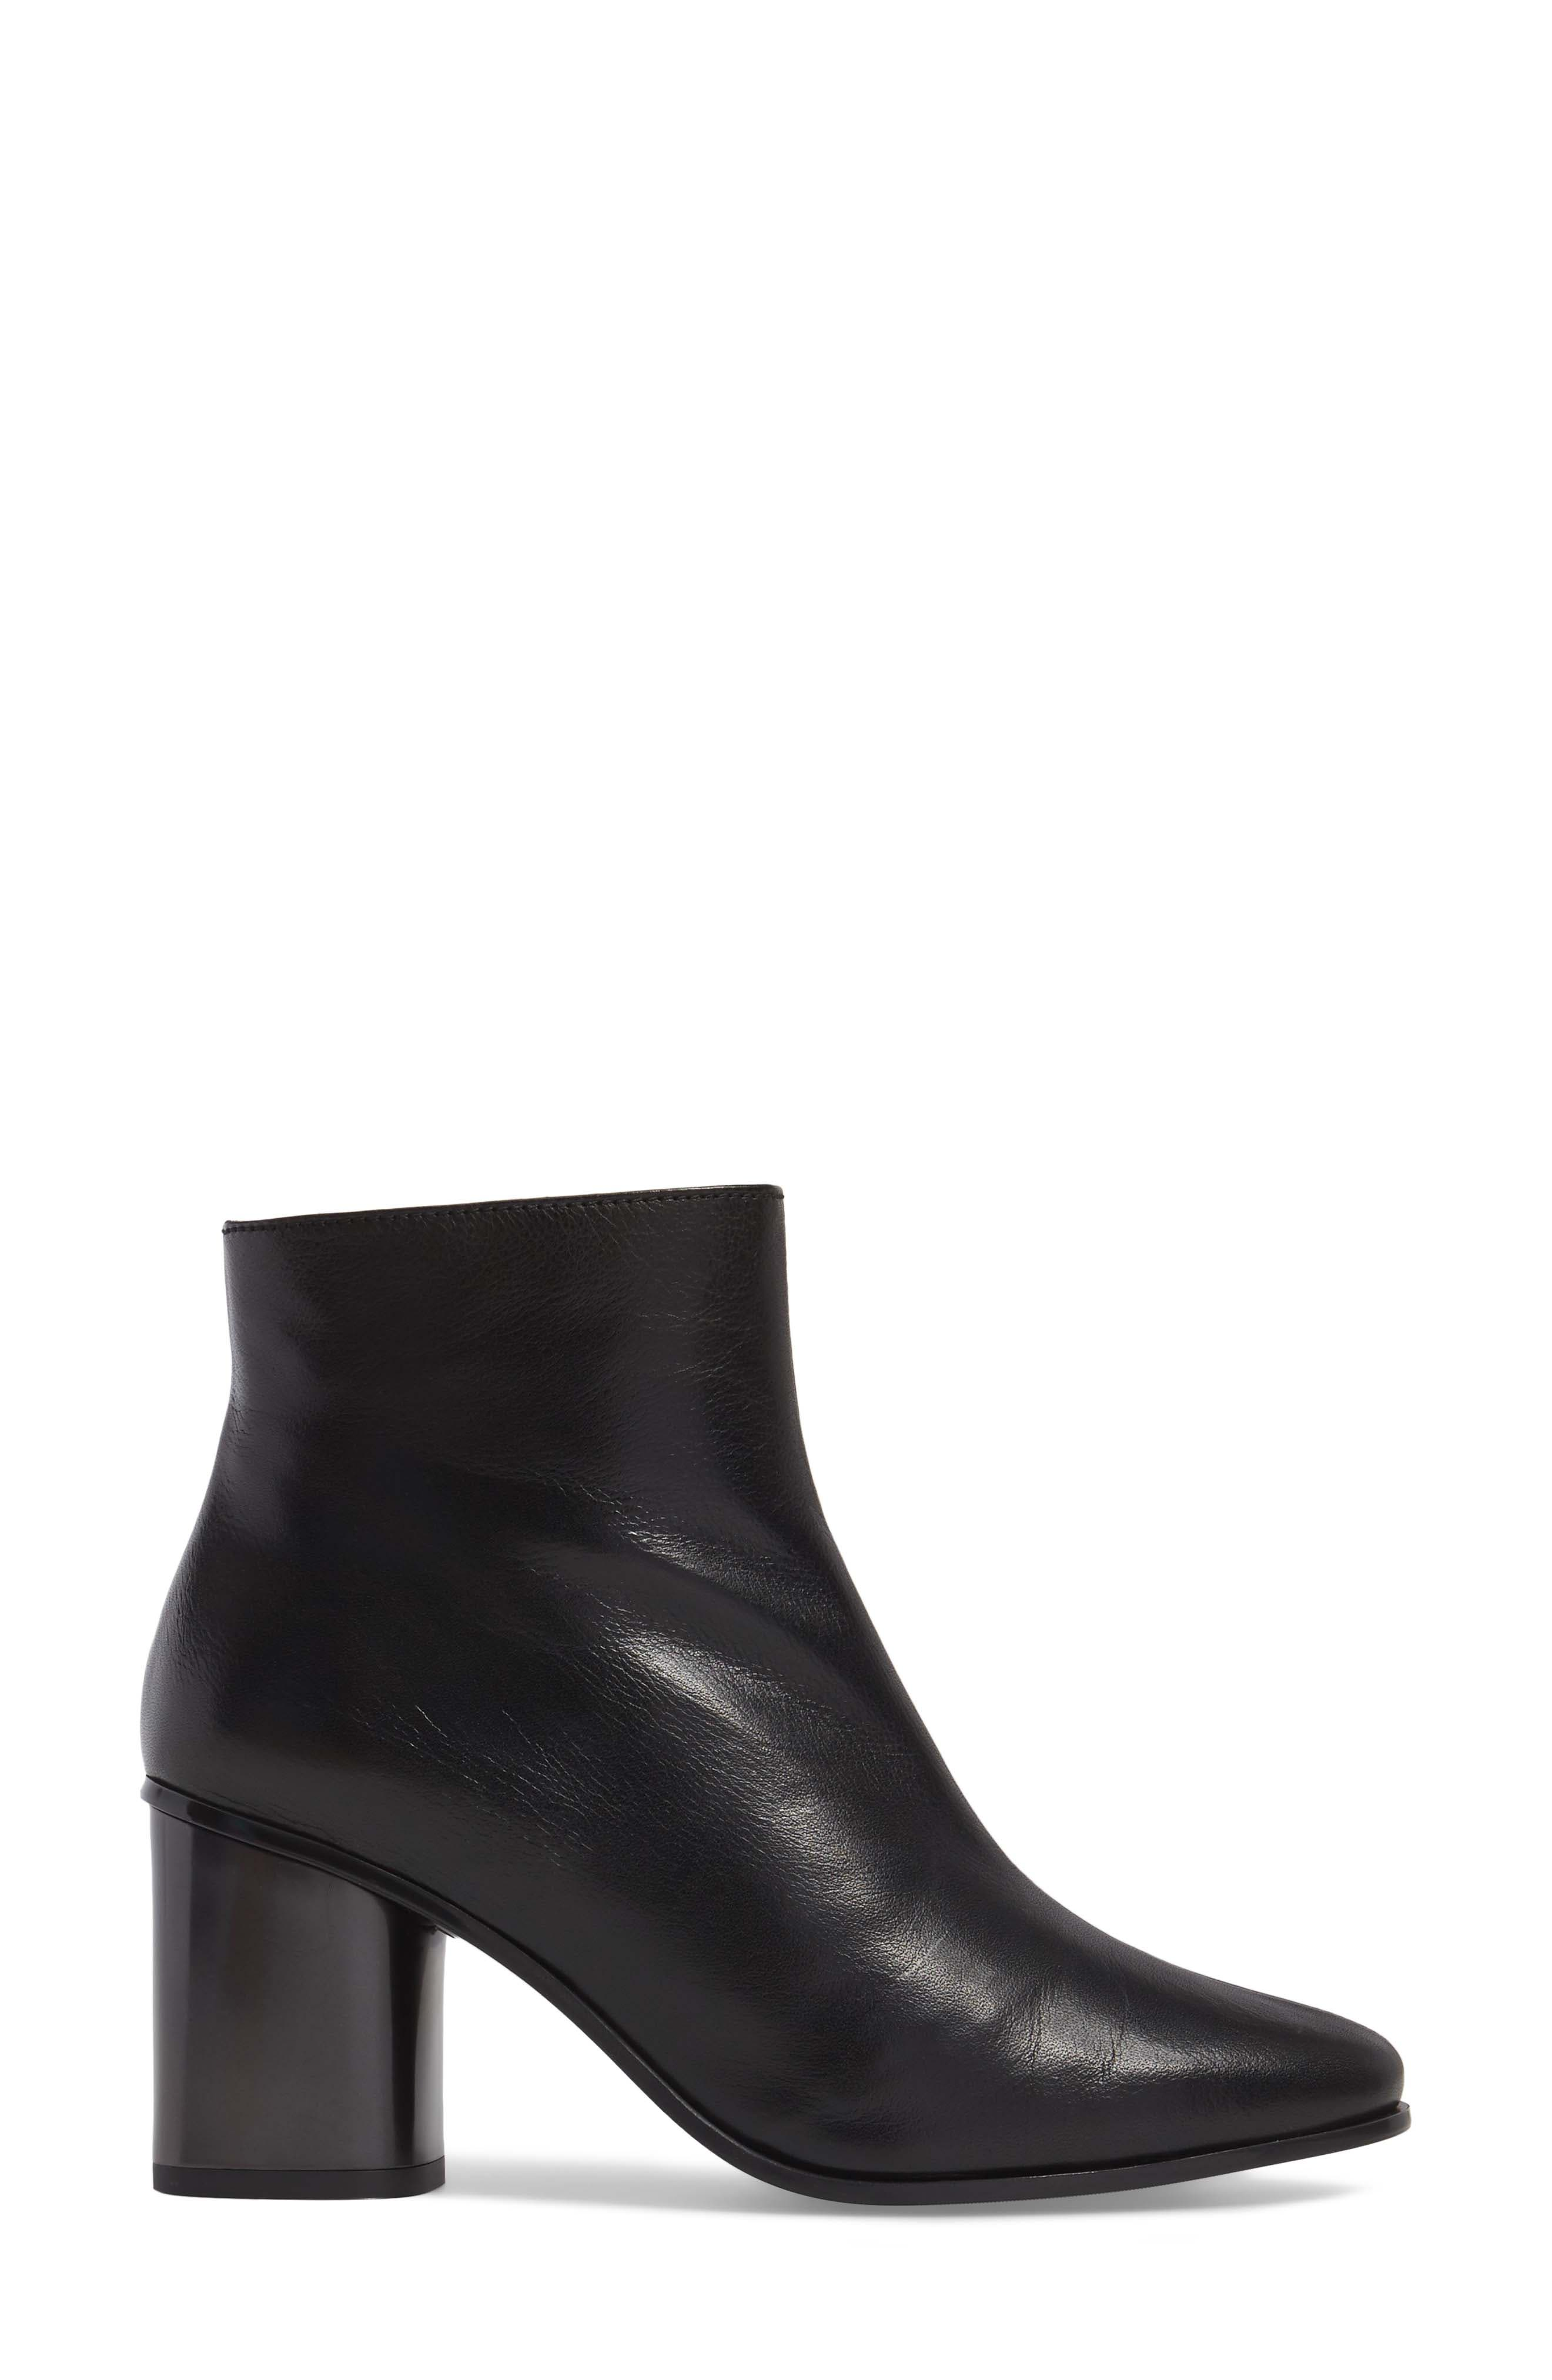 Maralyn Bootie,                             Alternate thumbnail 3, color,                             001